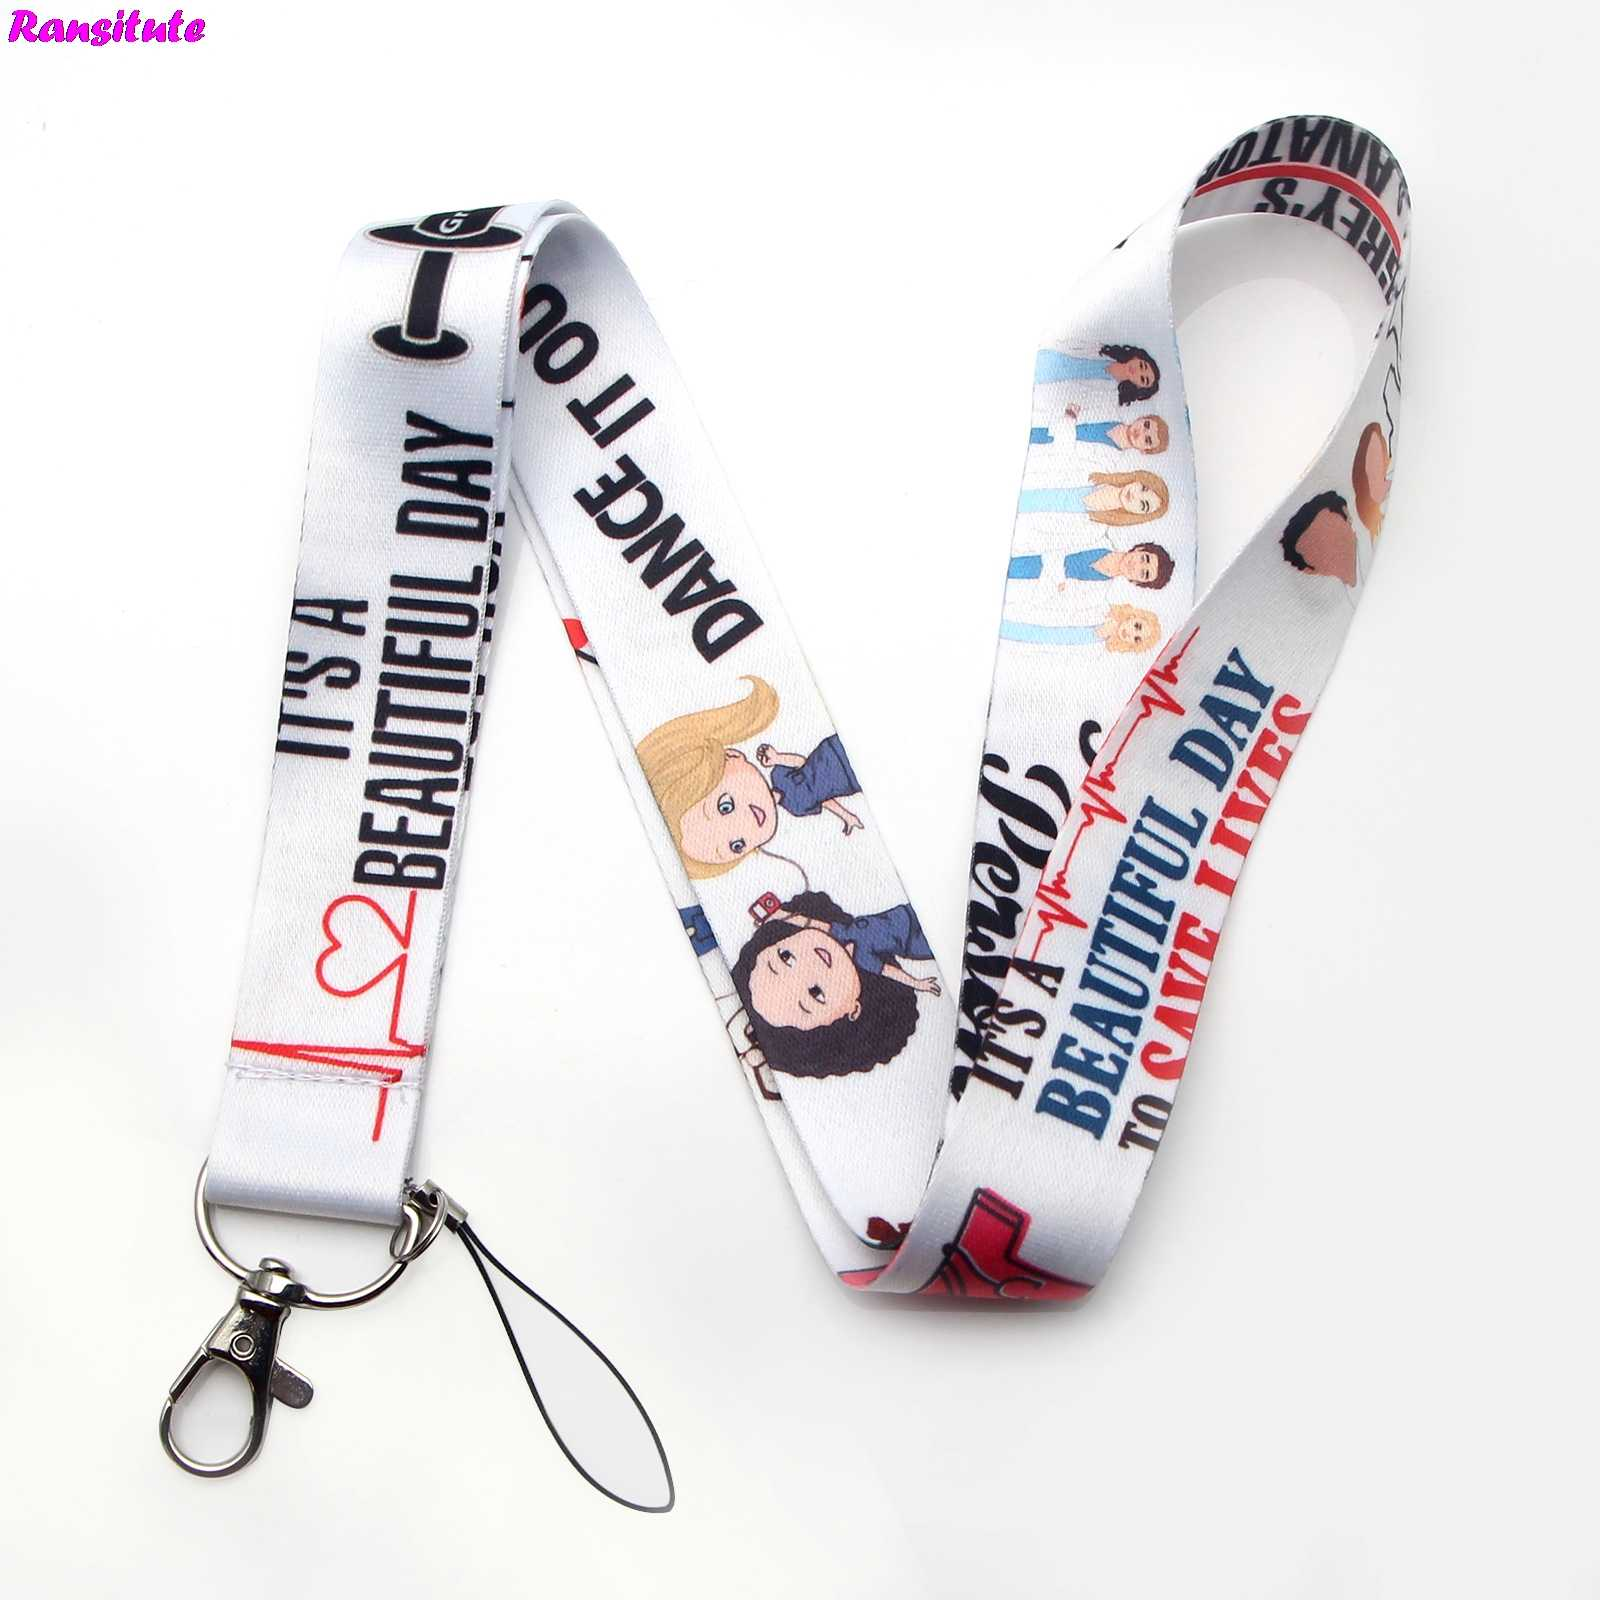 Grey's Anatomy Key ID Card Gym Mobile Phone Strap USB Badge Holder DIY Mobile Phone Lanyard